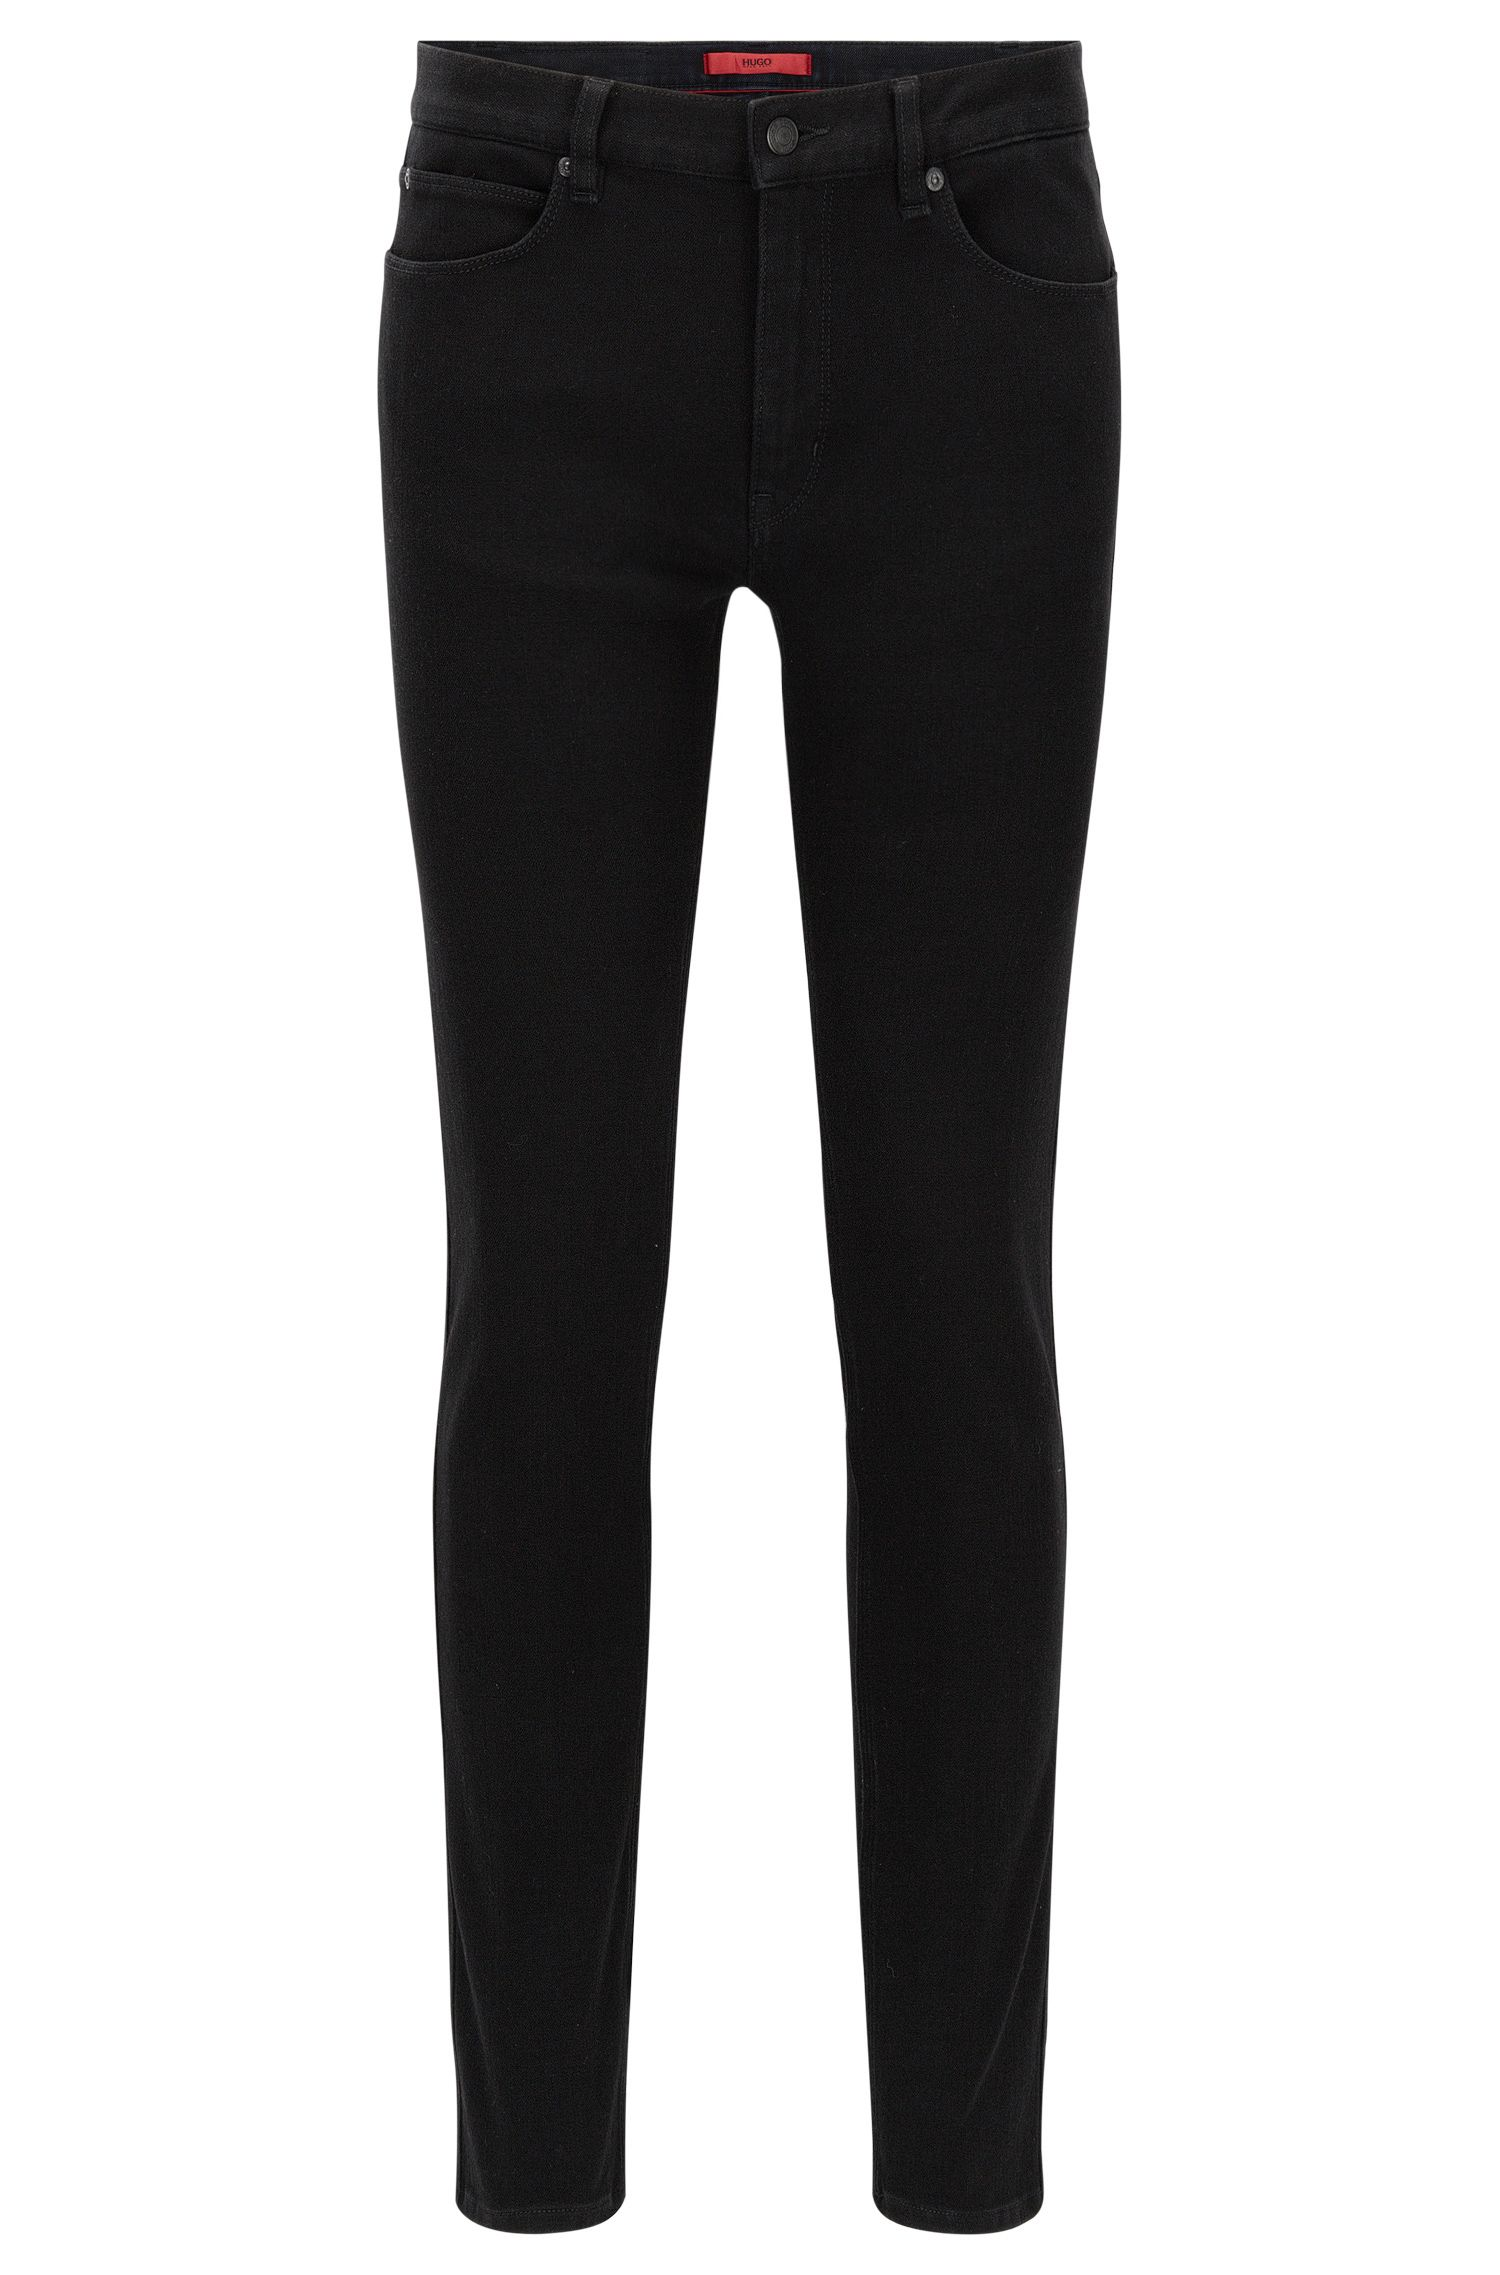 Skinny-fit jeans in black super-stretch denim